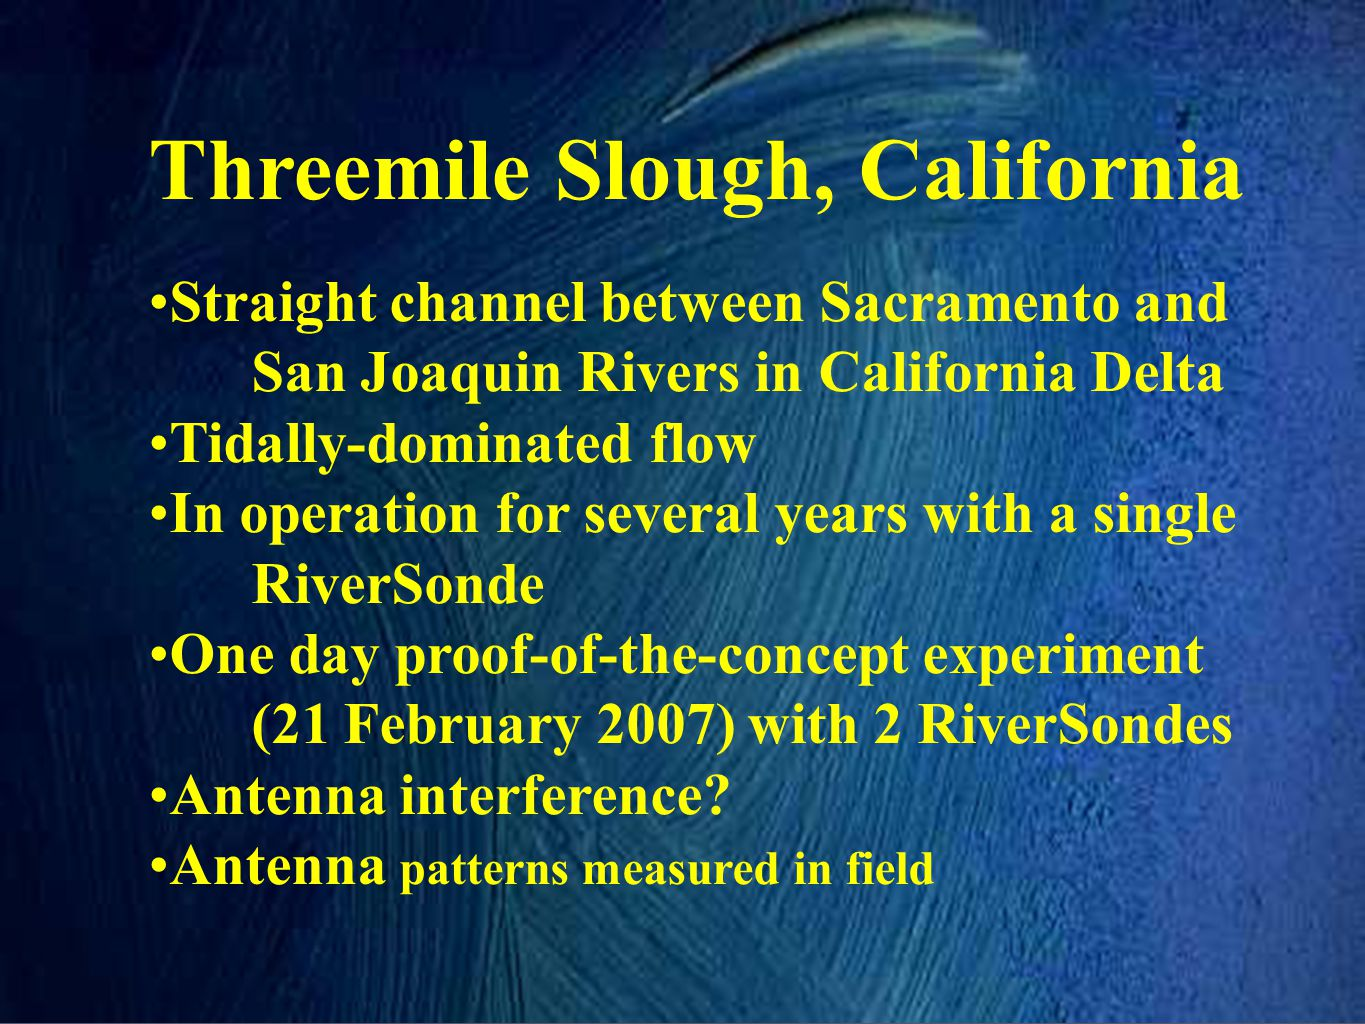 Threemile Slough, California